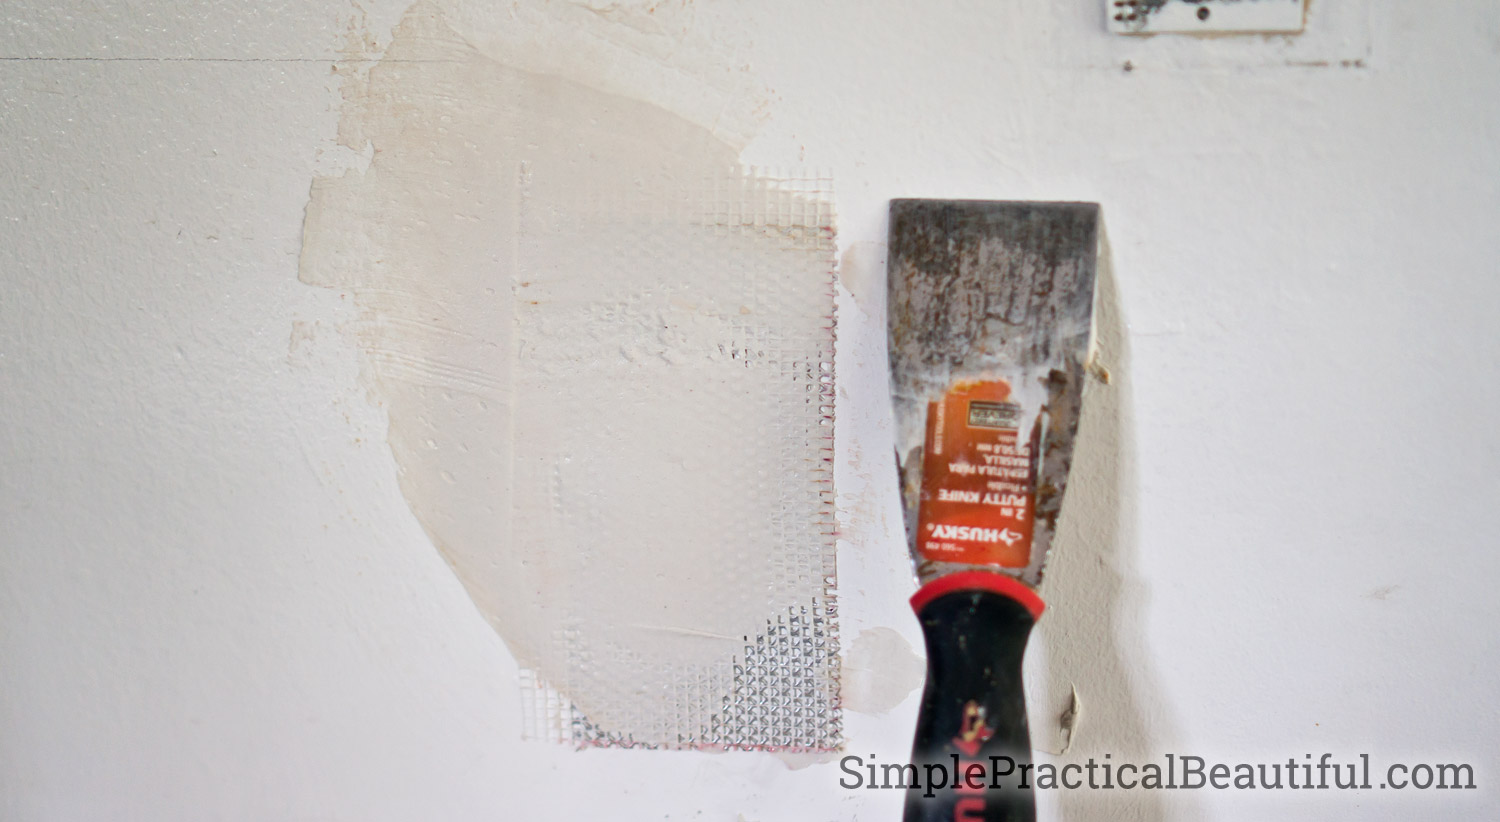 Use a patch kit to repair a hole in the wall